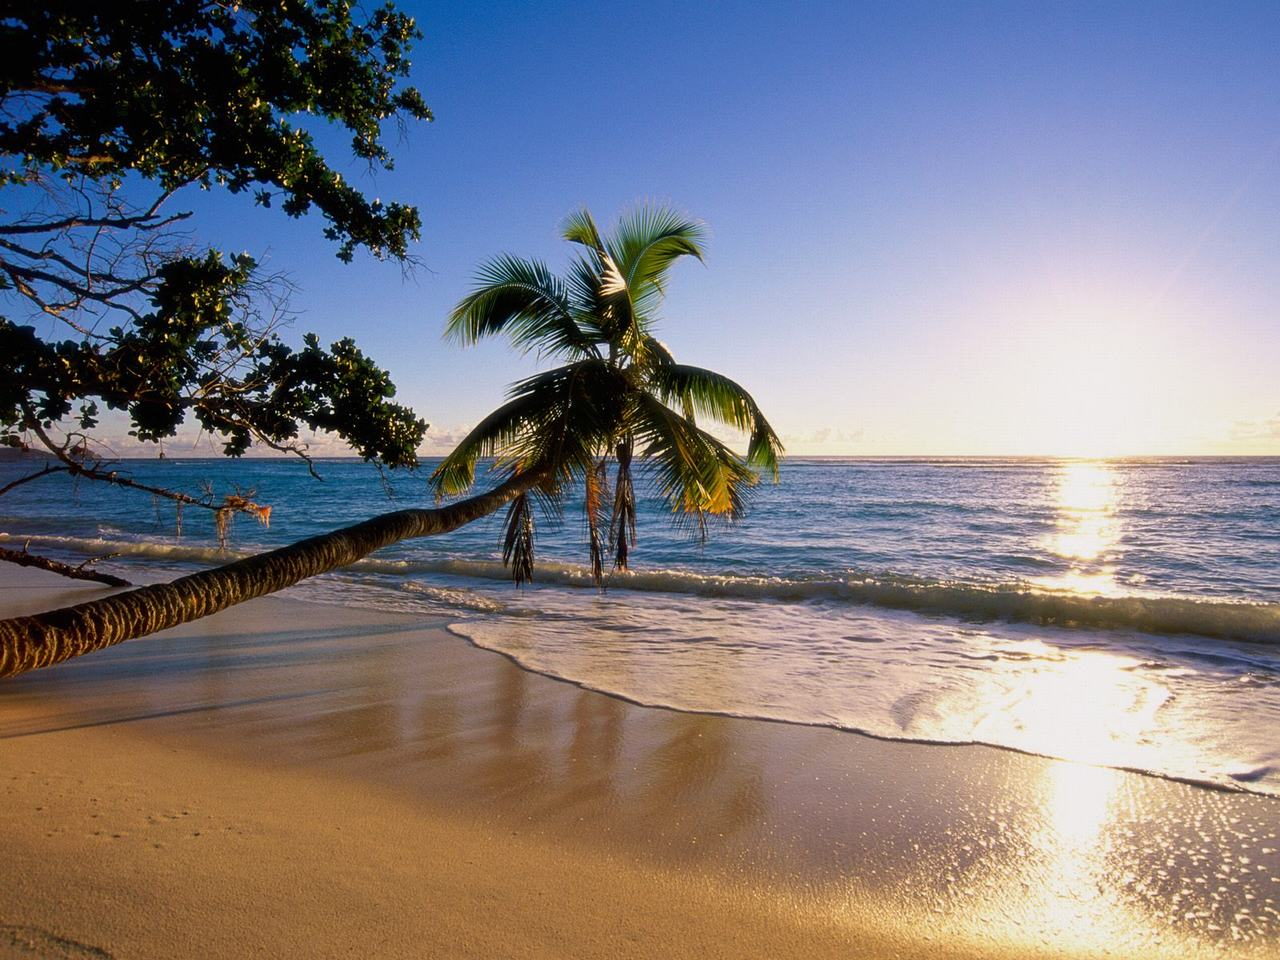 Beach Scenery Images 6 HD Wallpapers